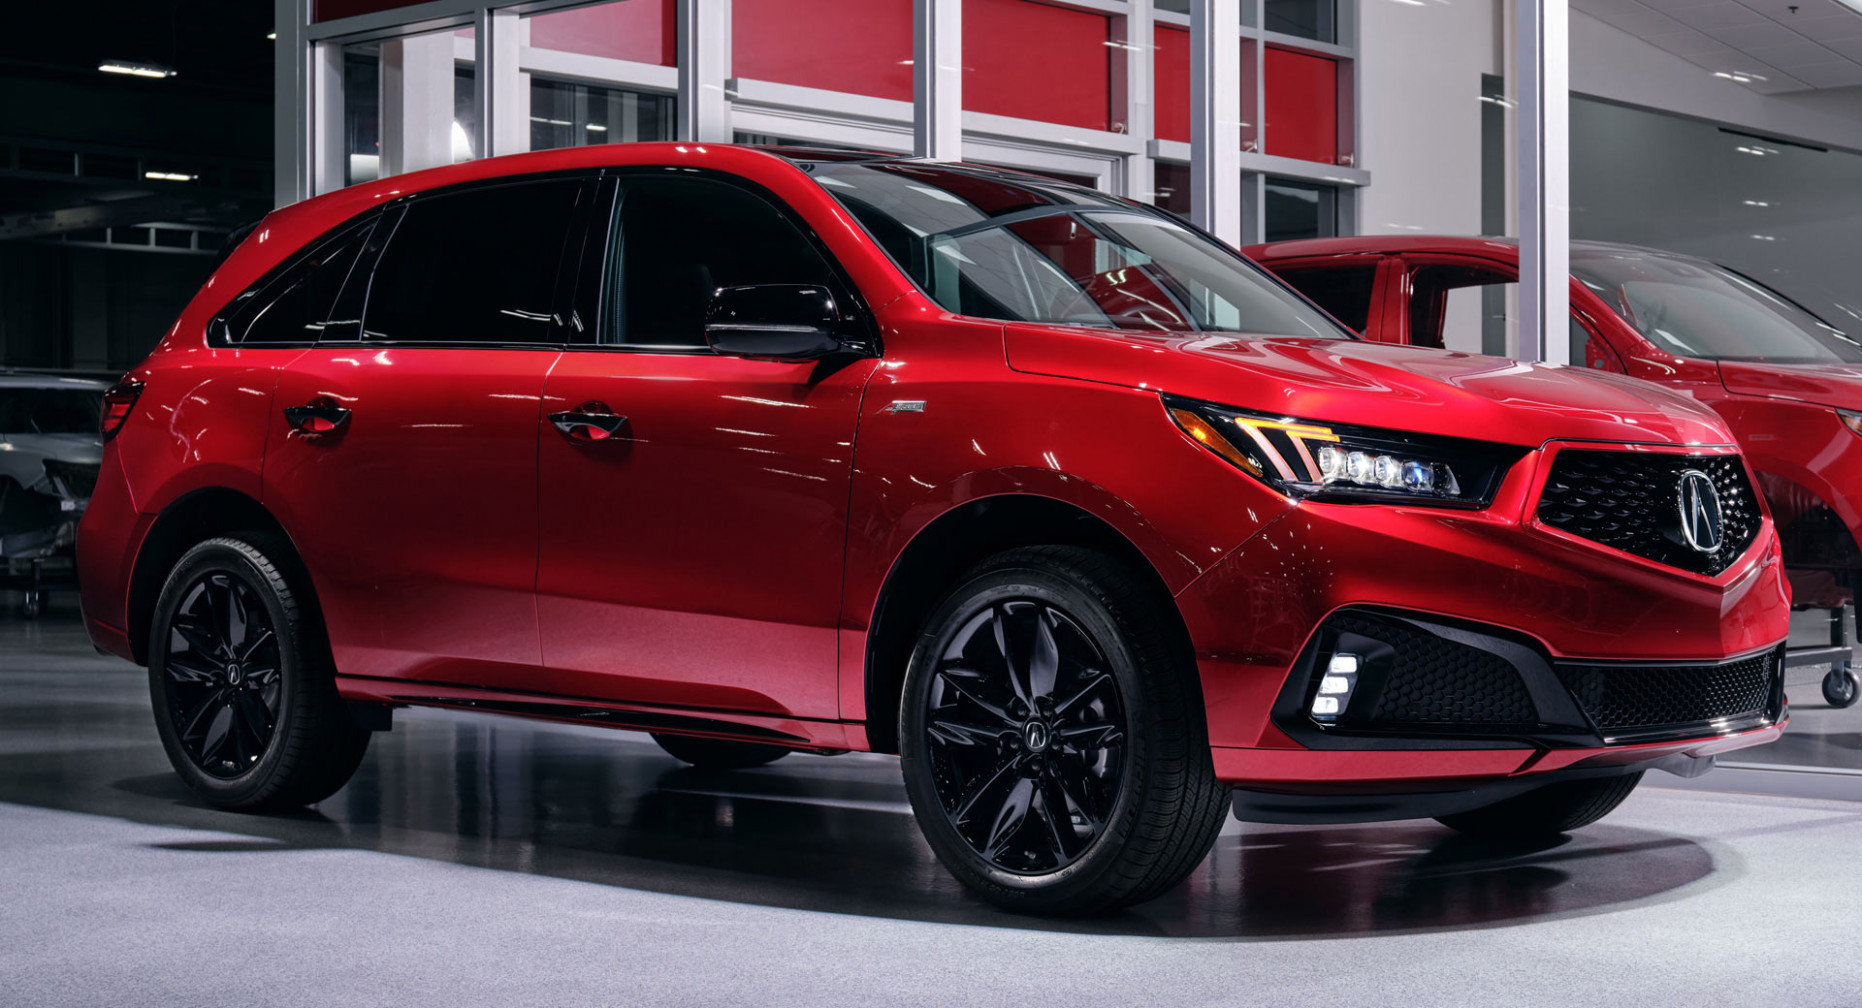 8 Acura MDX PMC Edition Is Handcrafted By The Same Experts Who ..